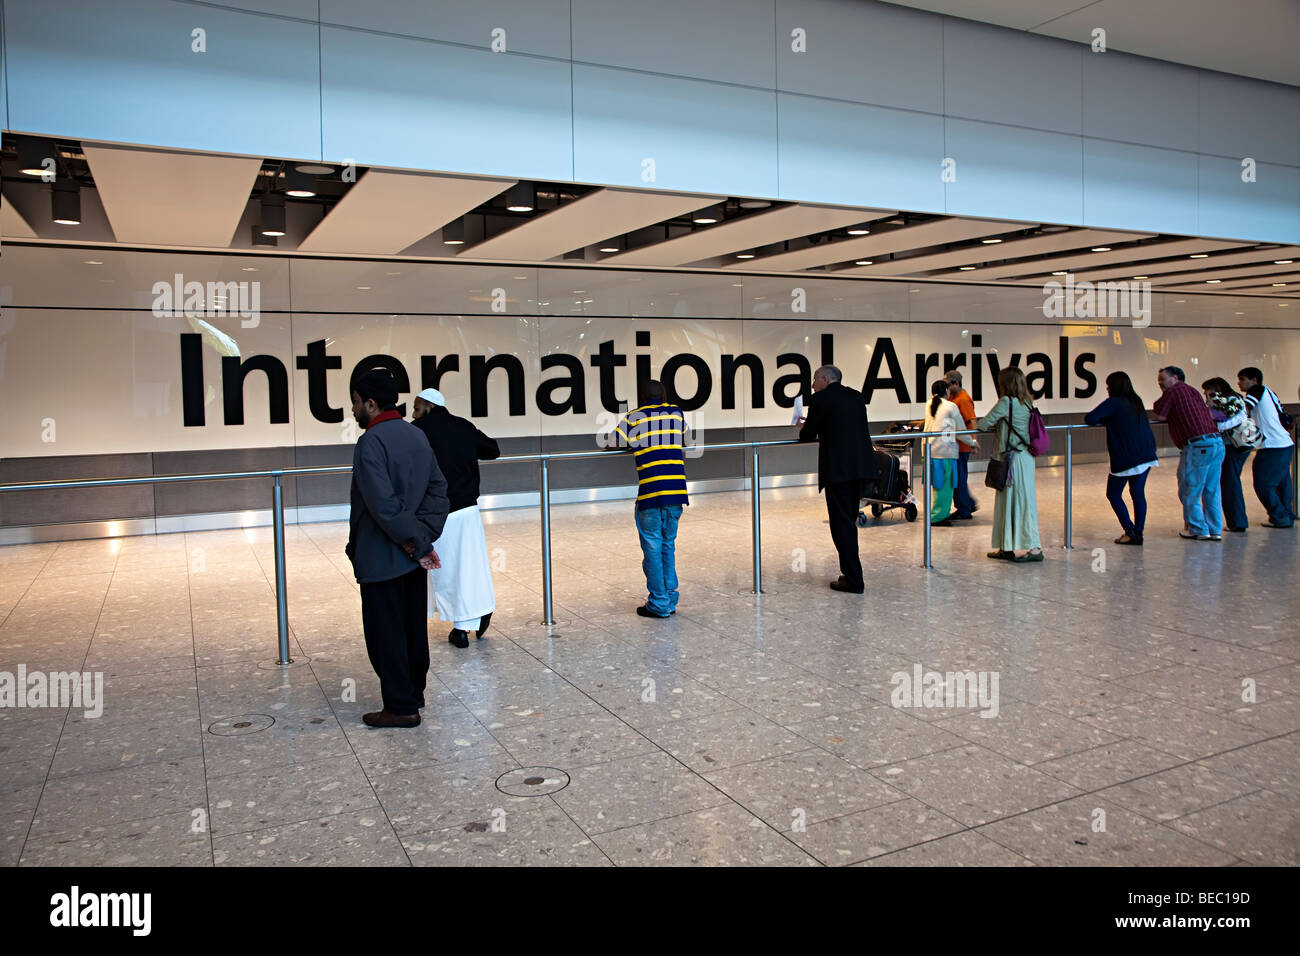 People waiting for international arrivals Heathrow airport London England UK - Stock Image